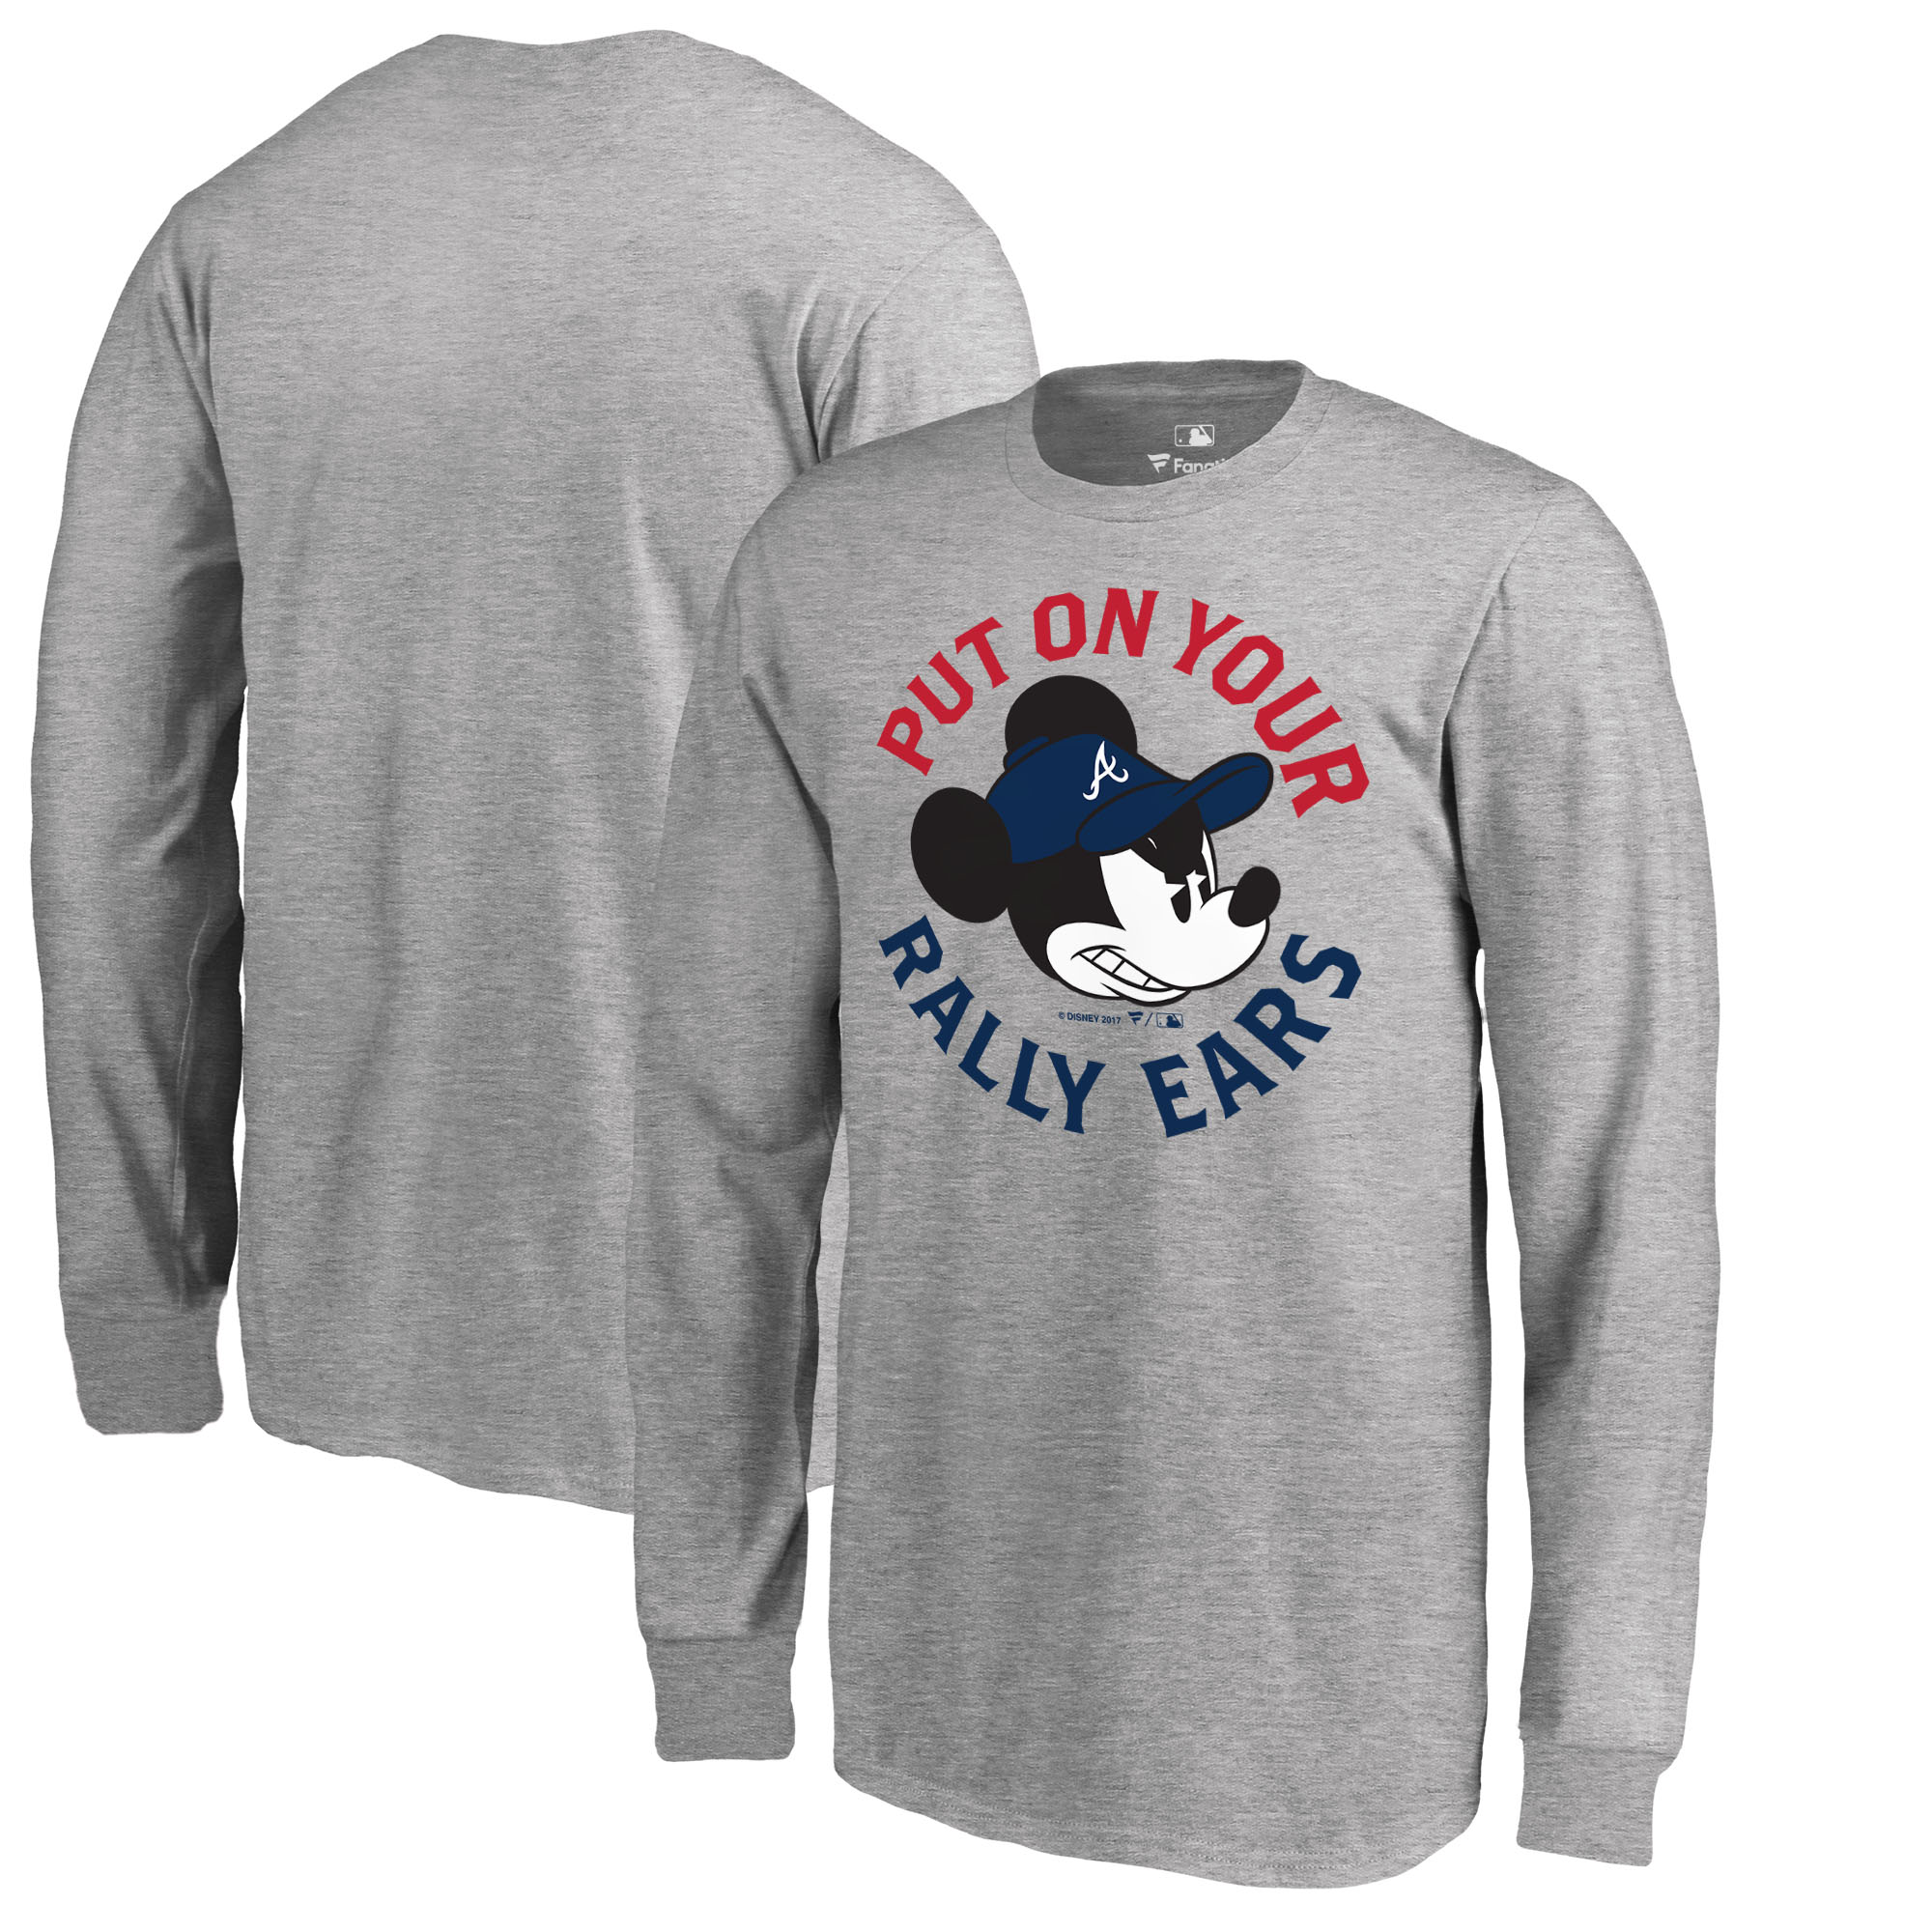 Atlanta Braves Fanatics Branded Youth Disney Rally Ears Long Sleeve T-Shirt - Heathered Gray